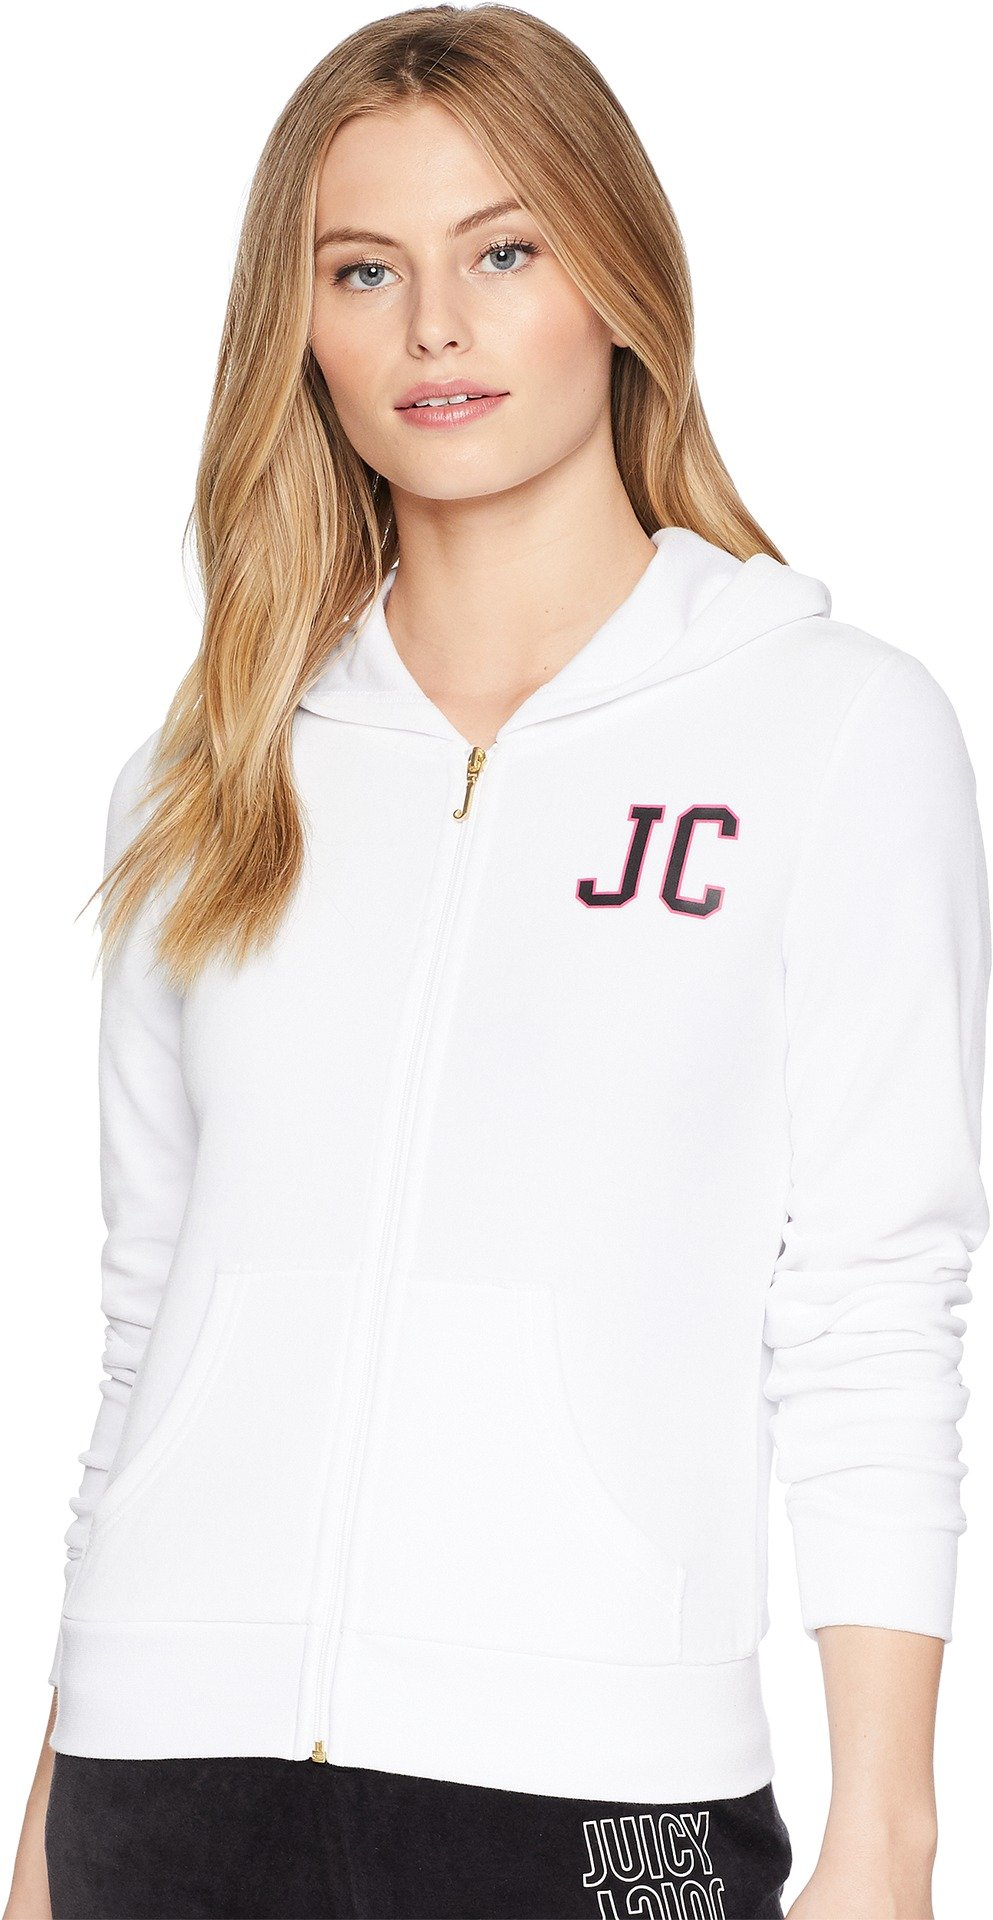 Juicy Couture Women's Robertson Jacket w/Varsity Logo White Medium by Juicy Couture